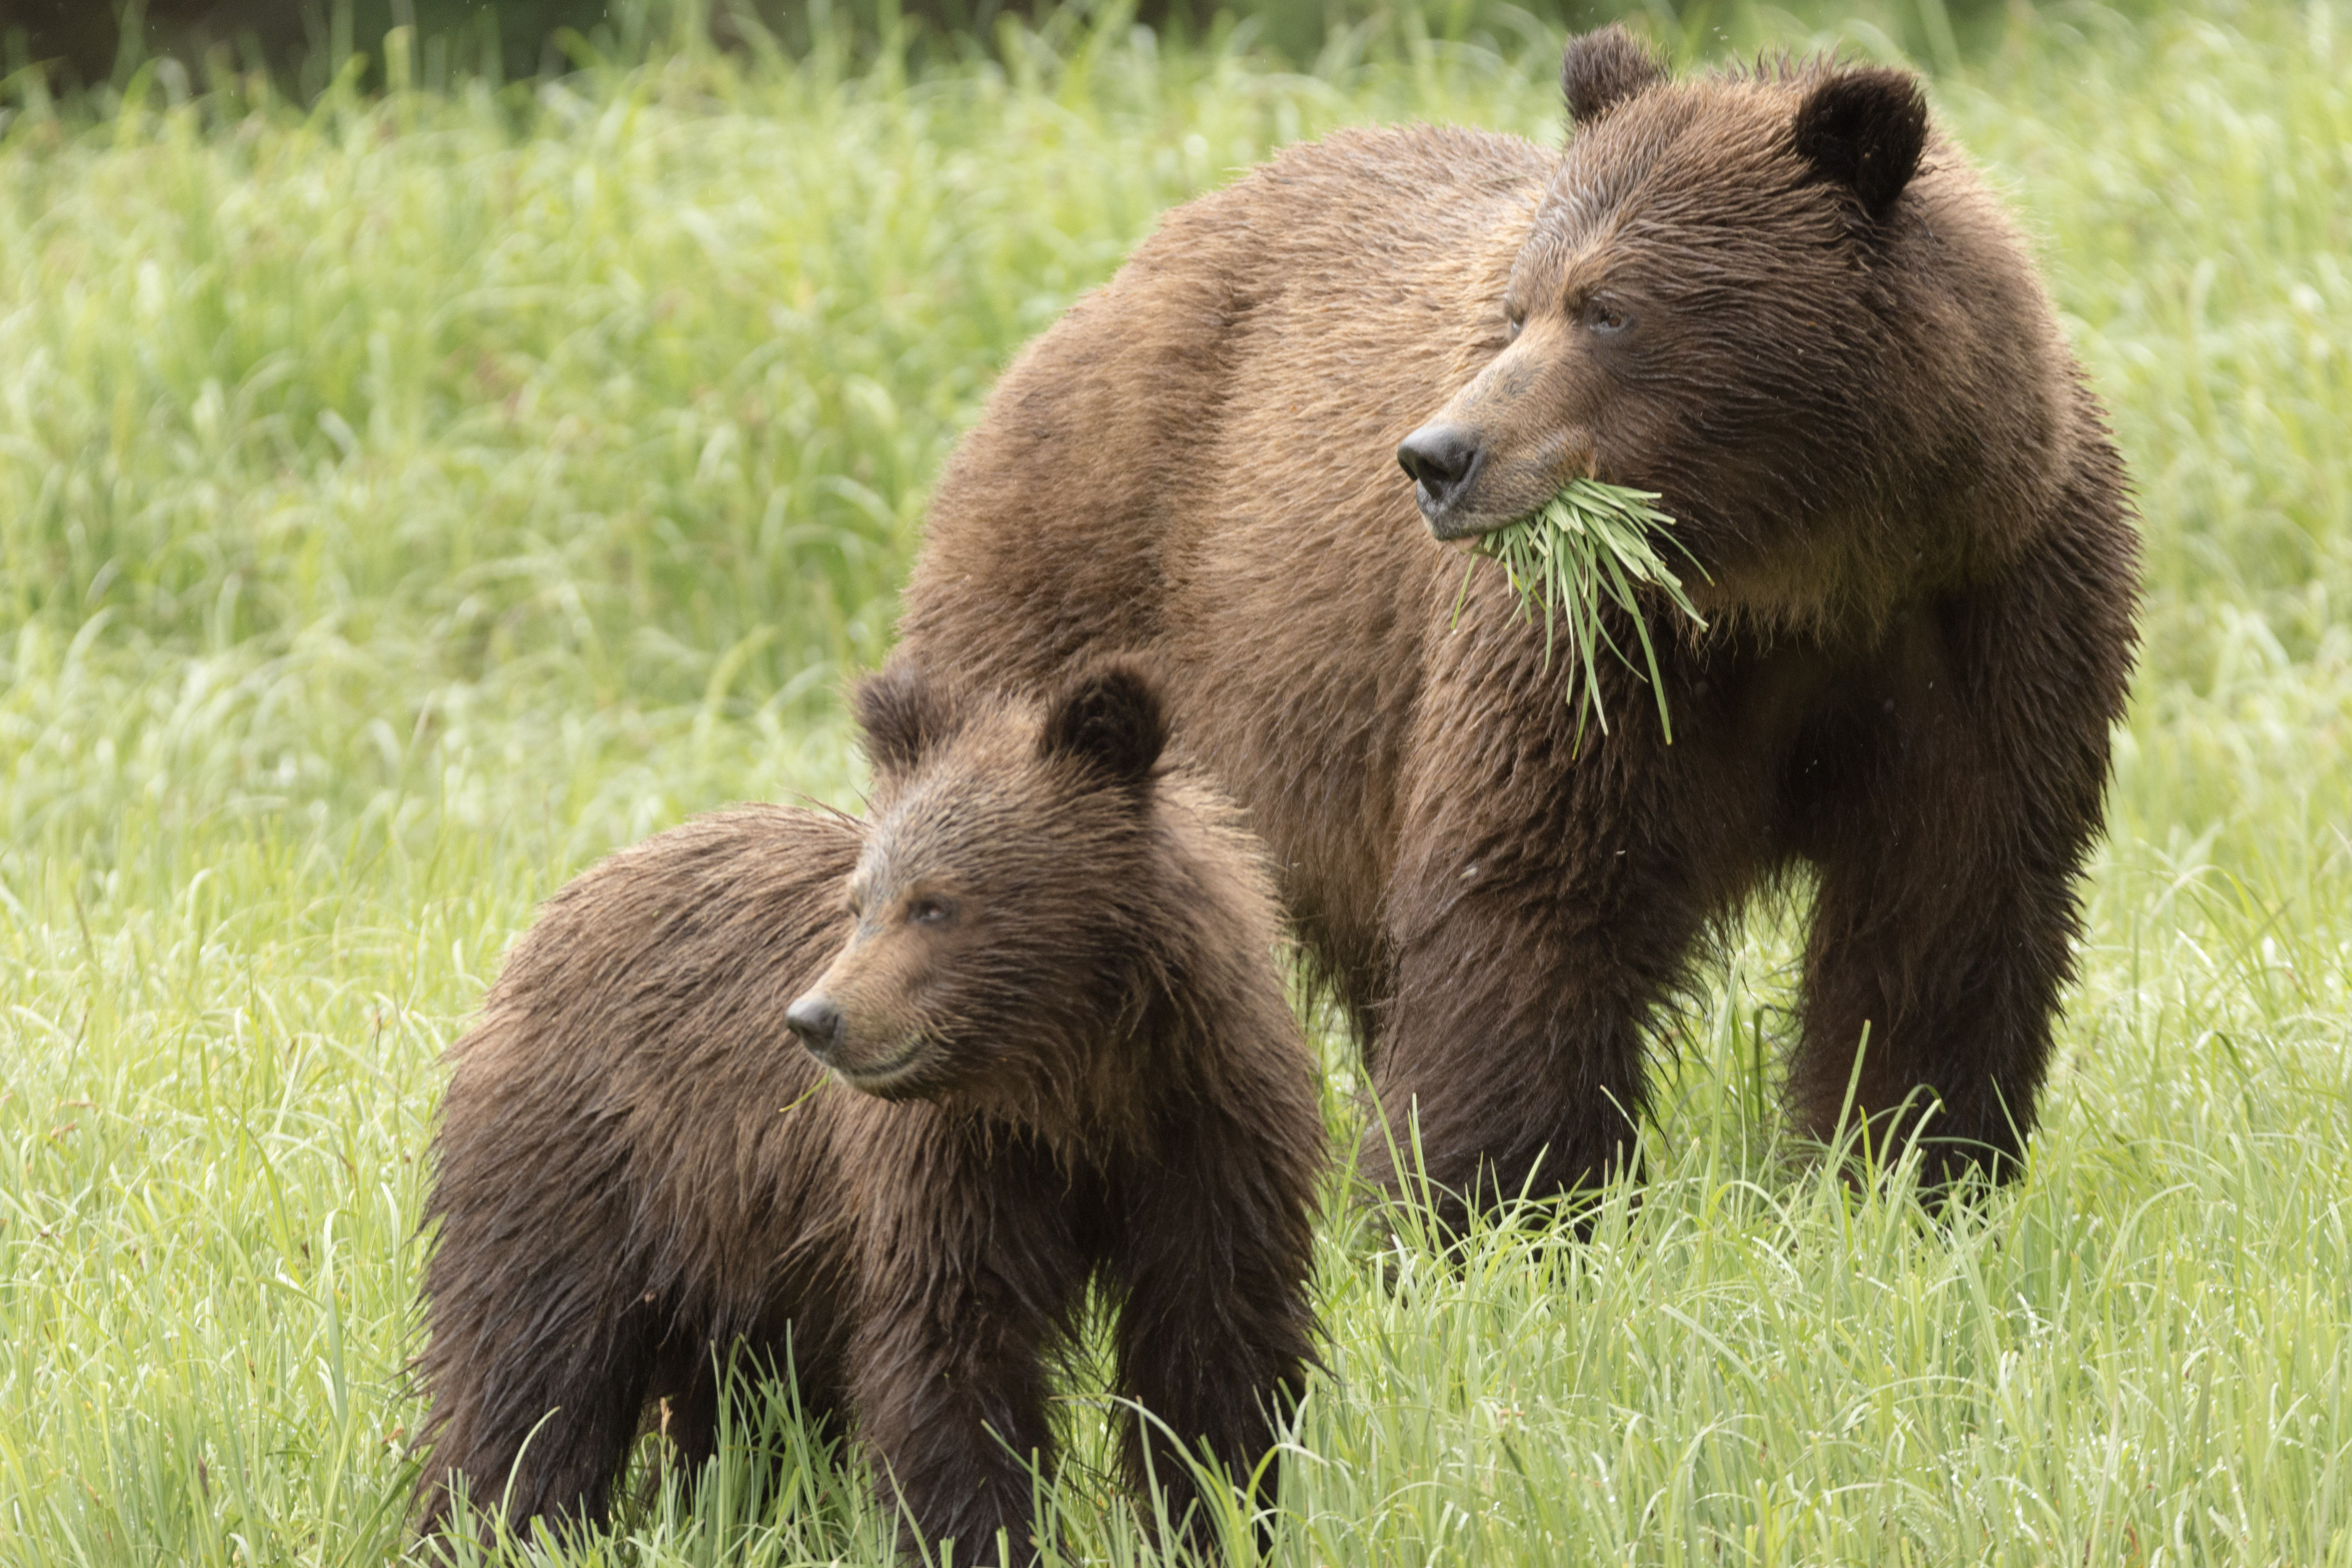 Grizzly bears eat grass as well as meat.